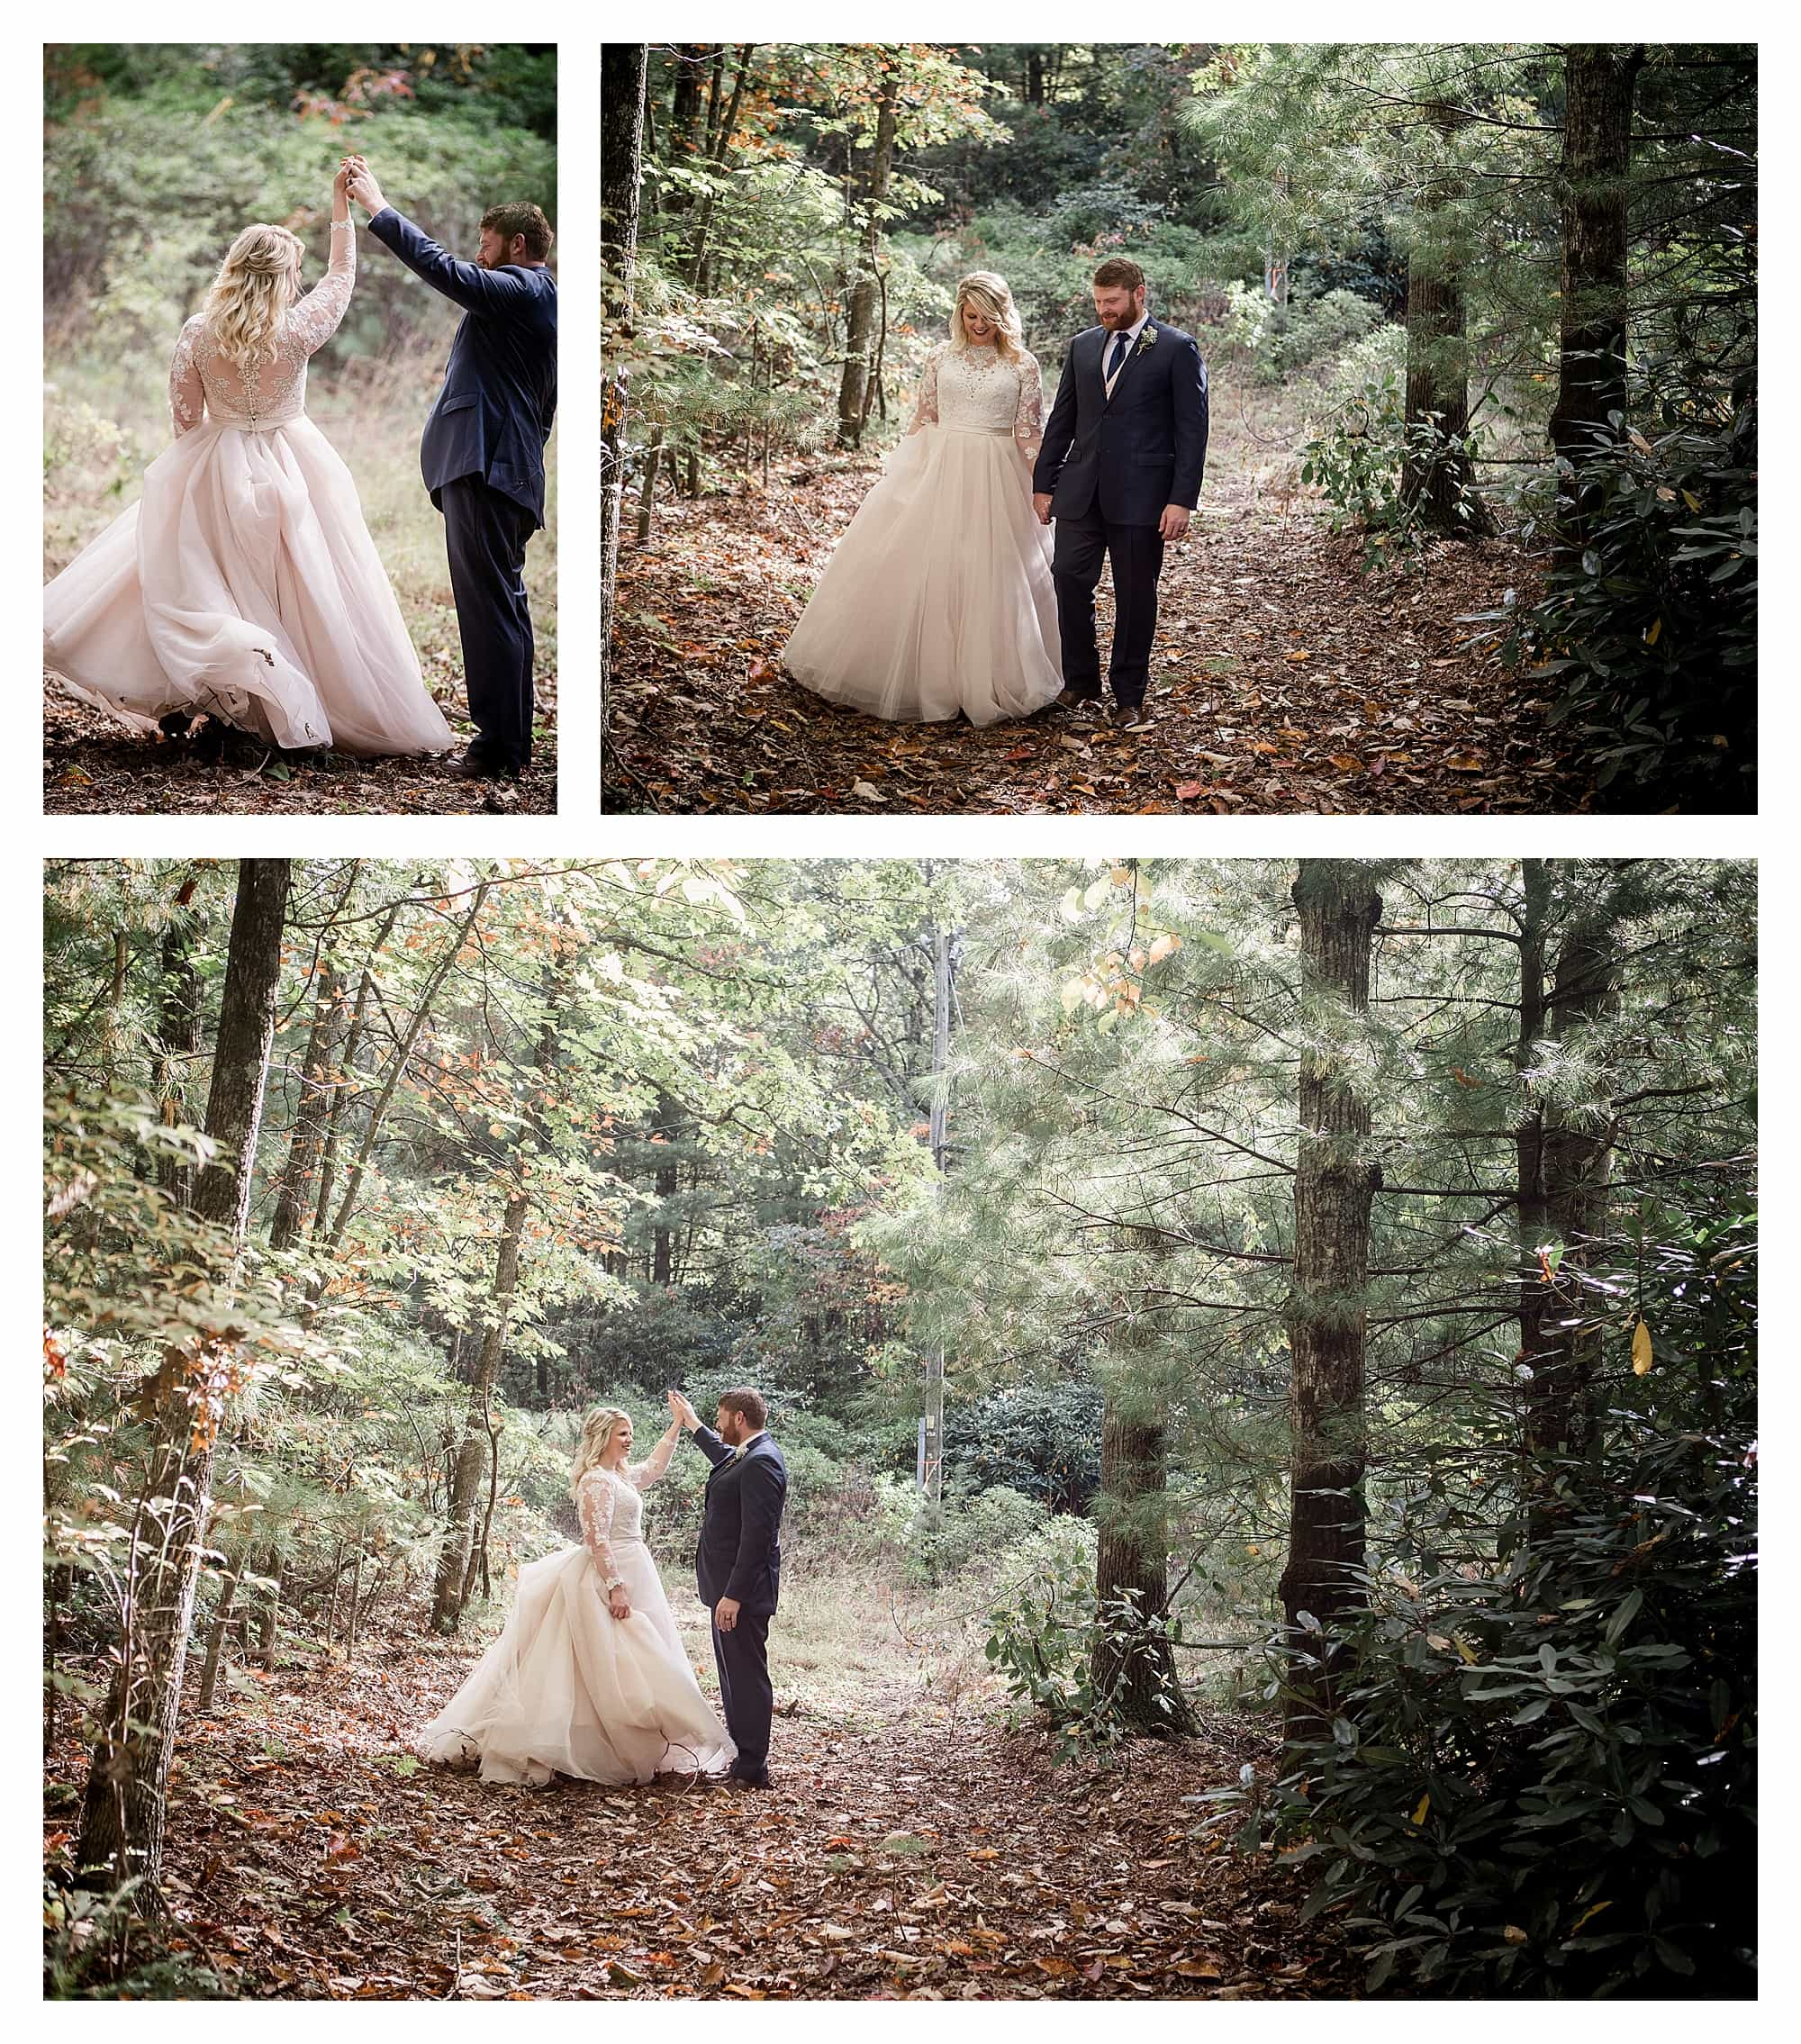 Dancing in the woods in the fall